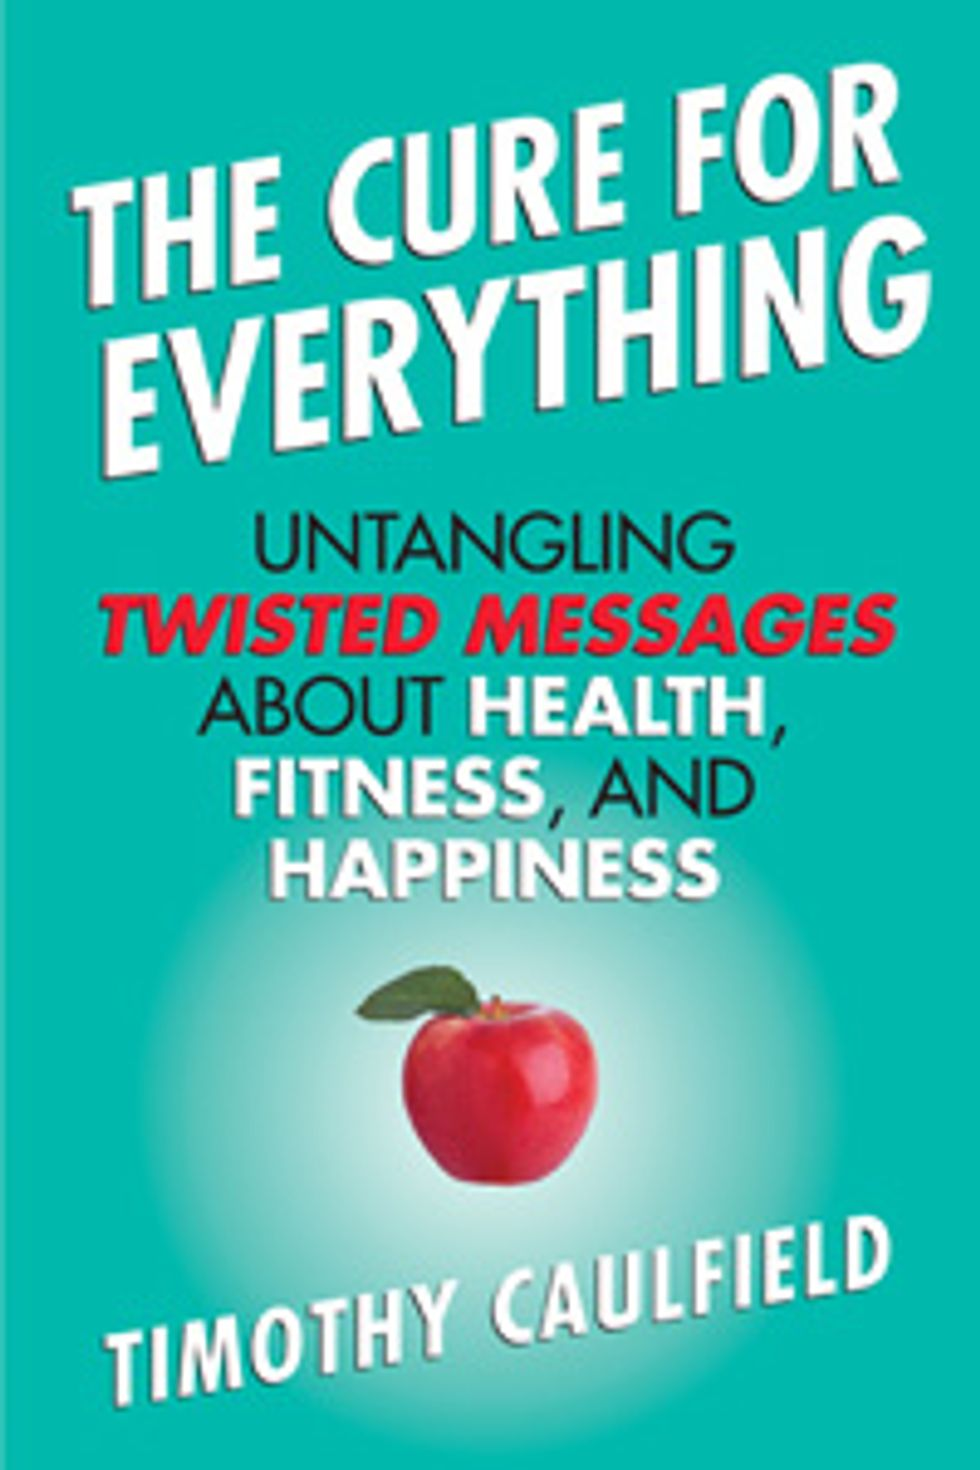 DC Lecture April 25: Decoding Messages About Health, Fitness, and Happiness